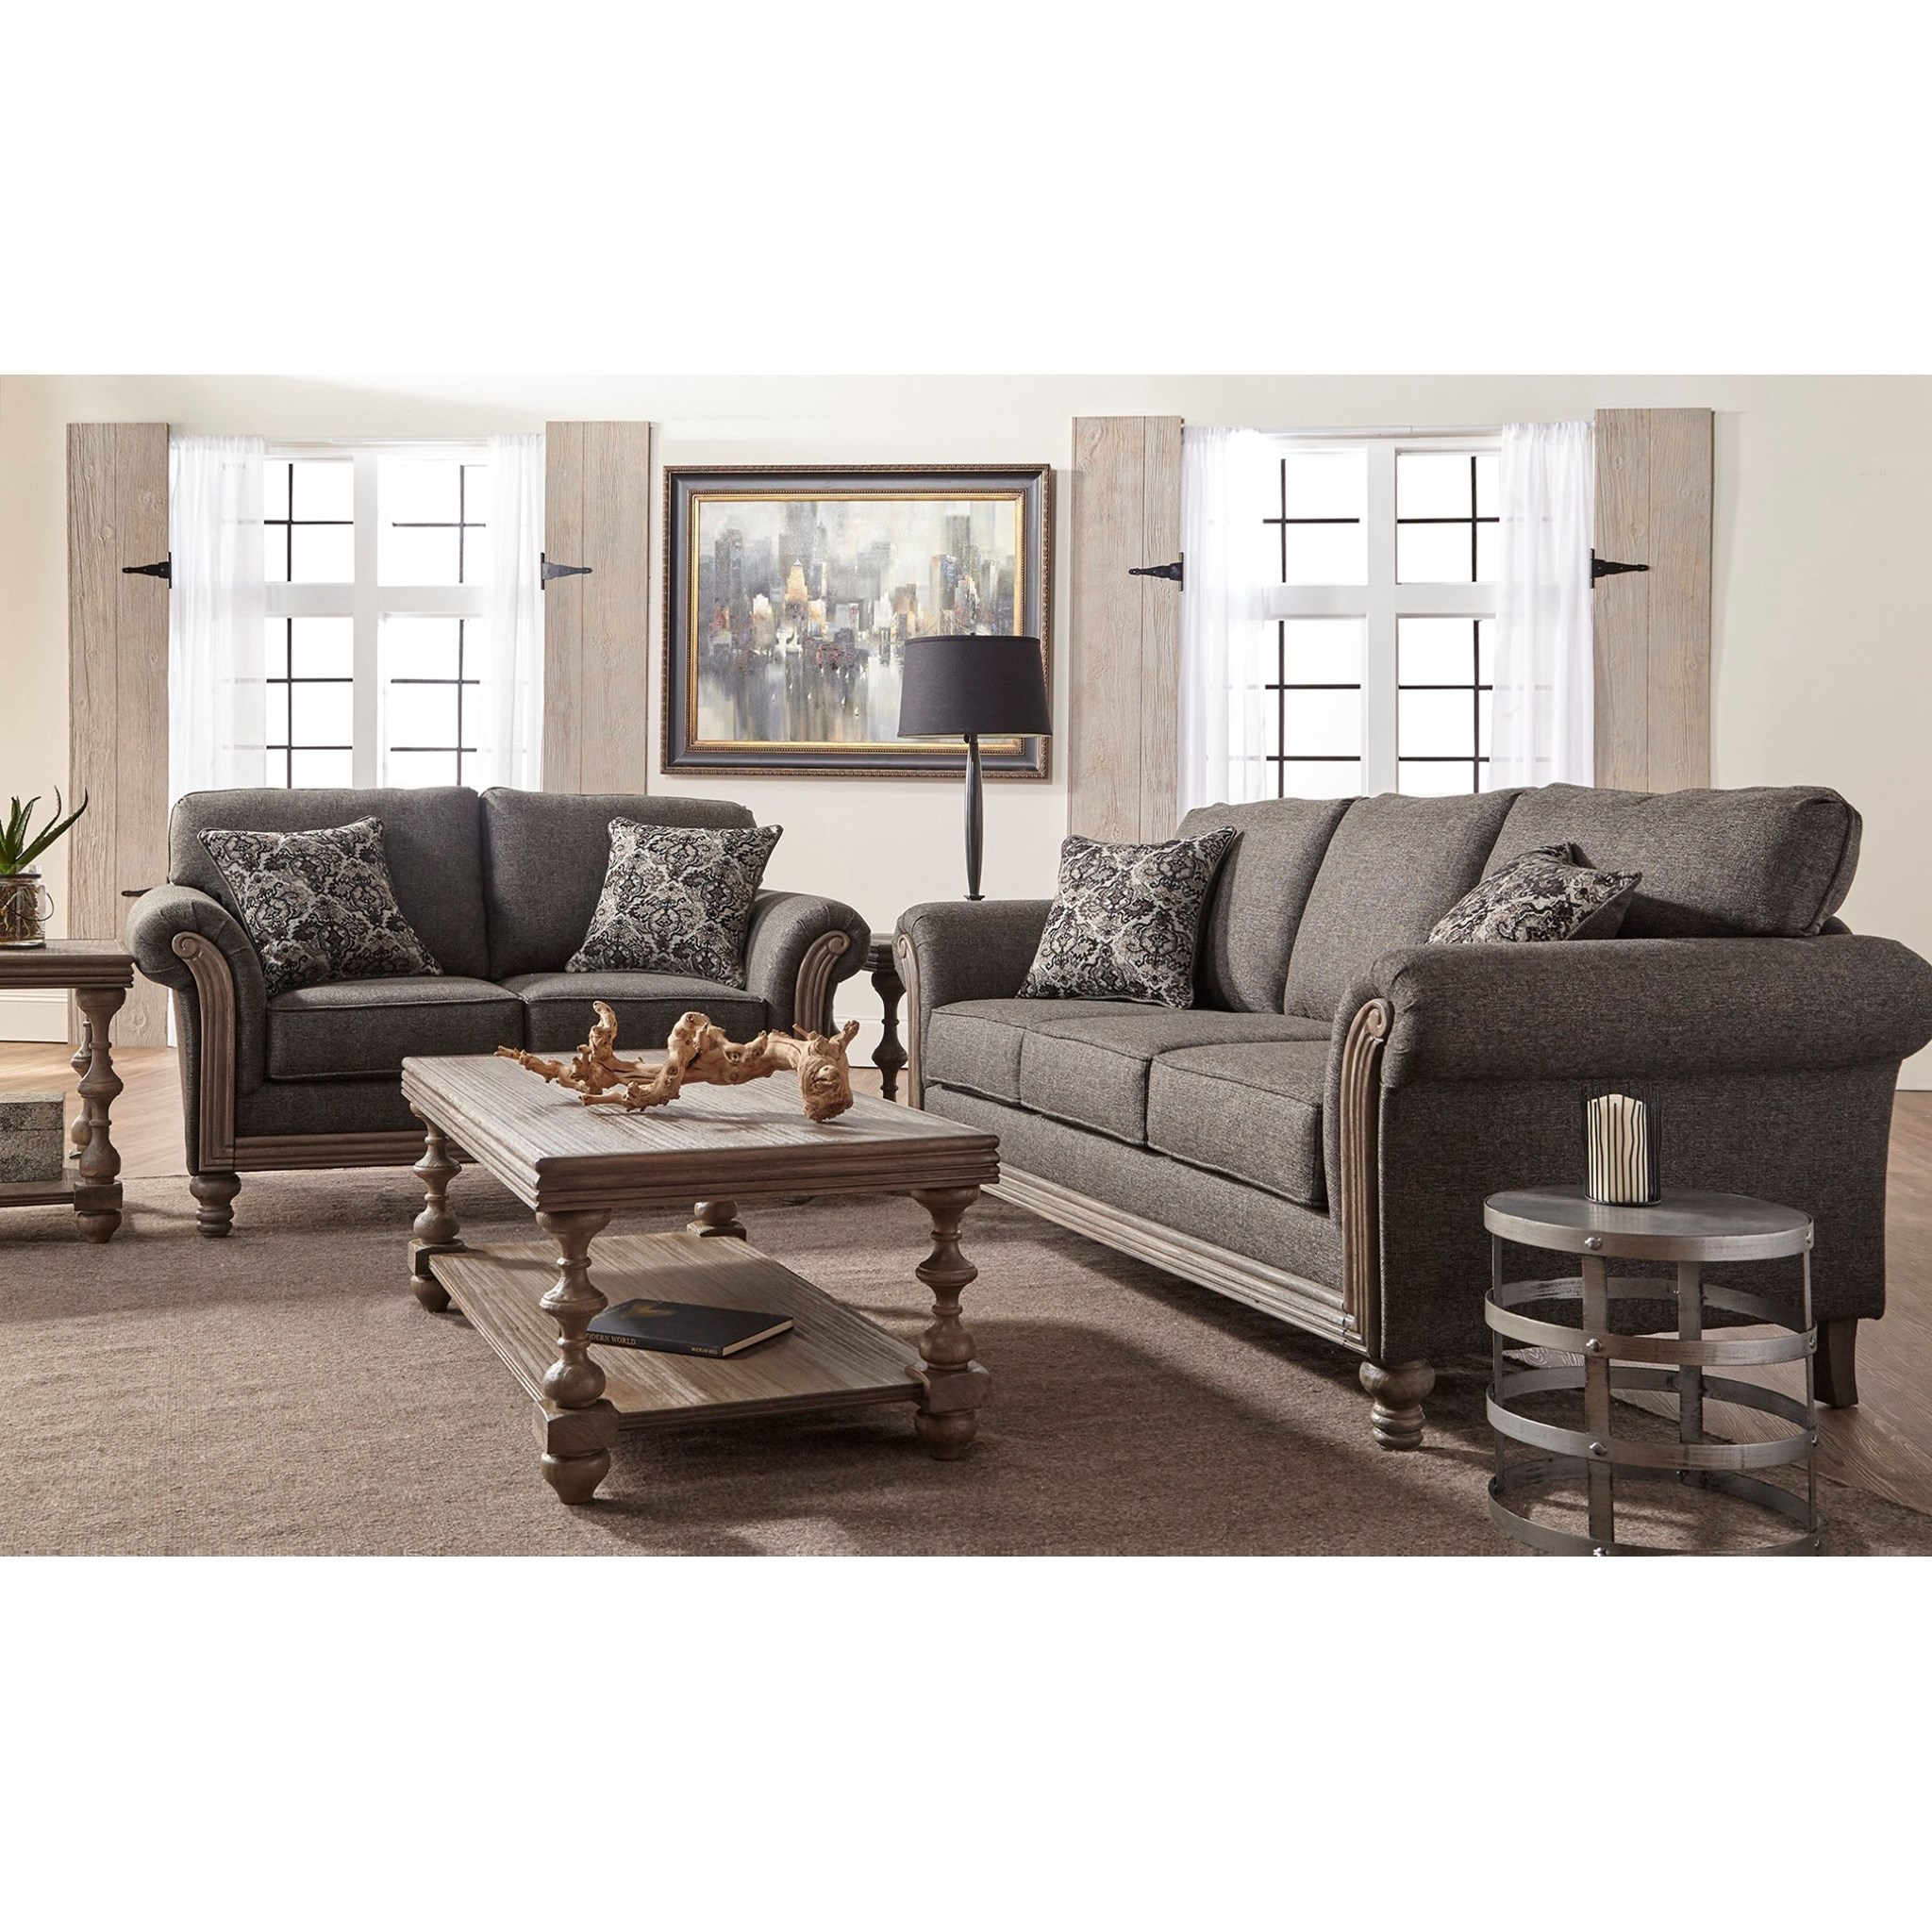 Serta Upholstery Belmont Traditional Stationary Sofa With